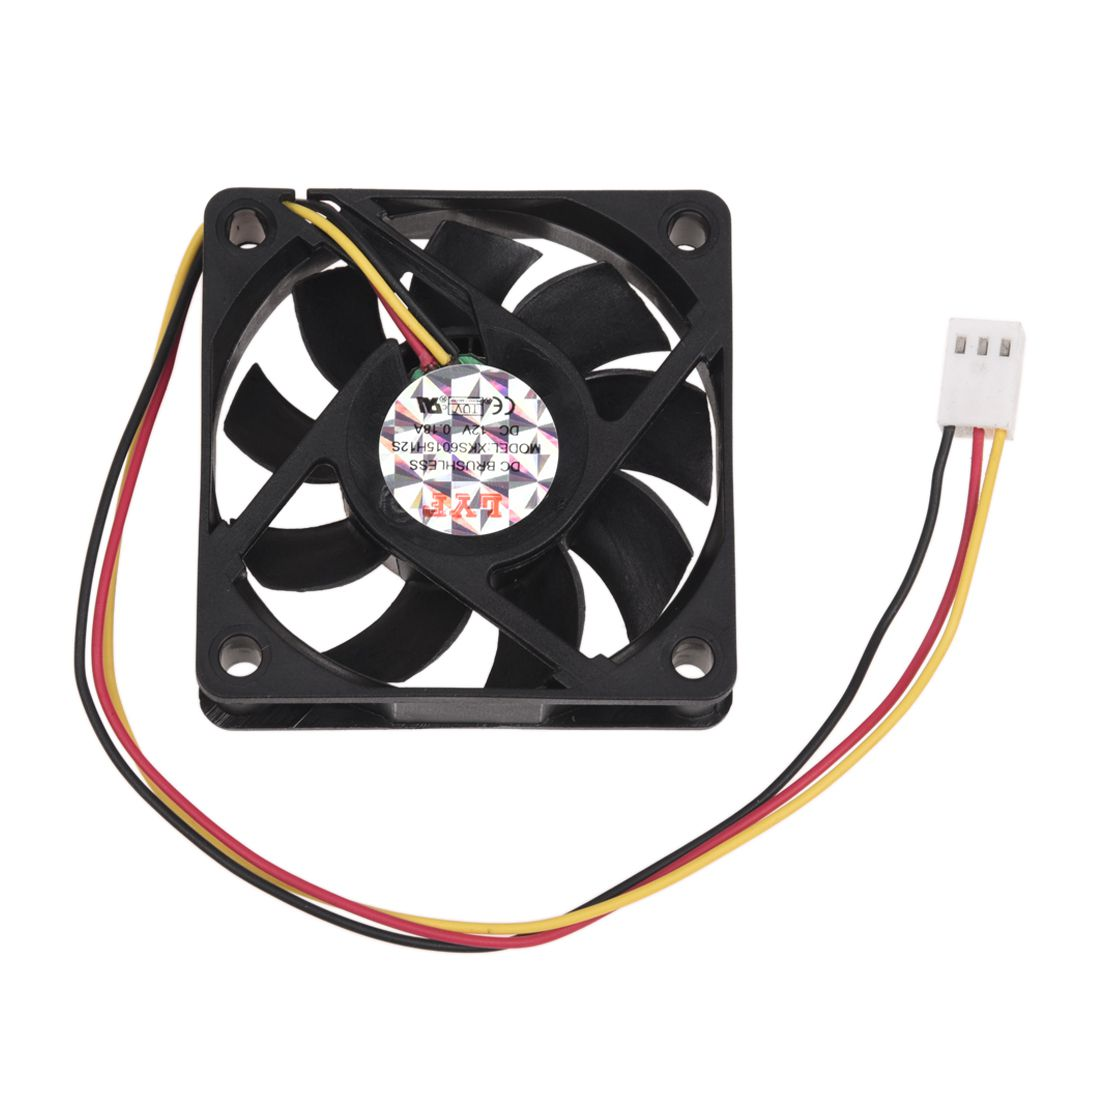 DC 12V 0.2A Black Plastic 3 Pin Connector PC Computer Case Cooling Fan 60x60mm